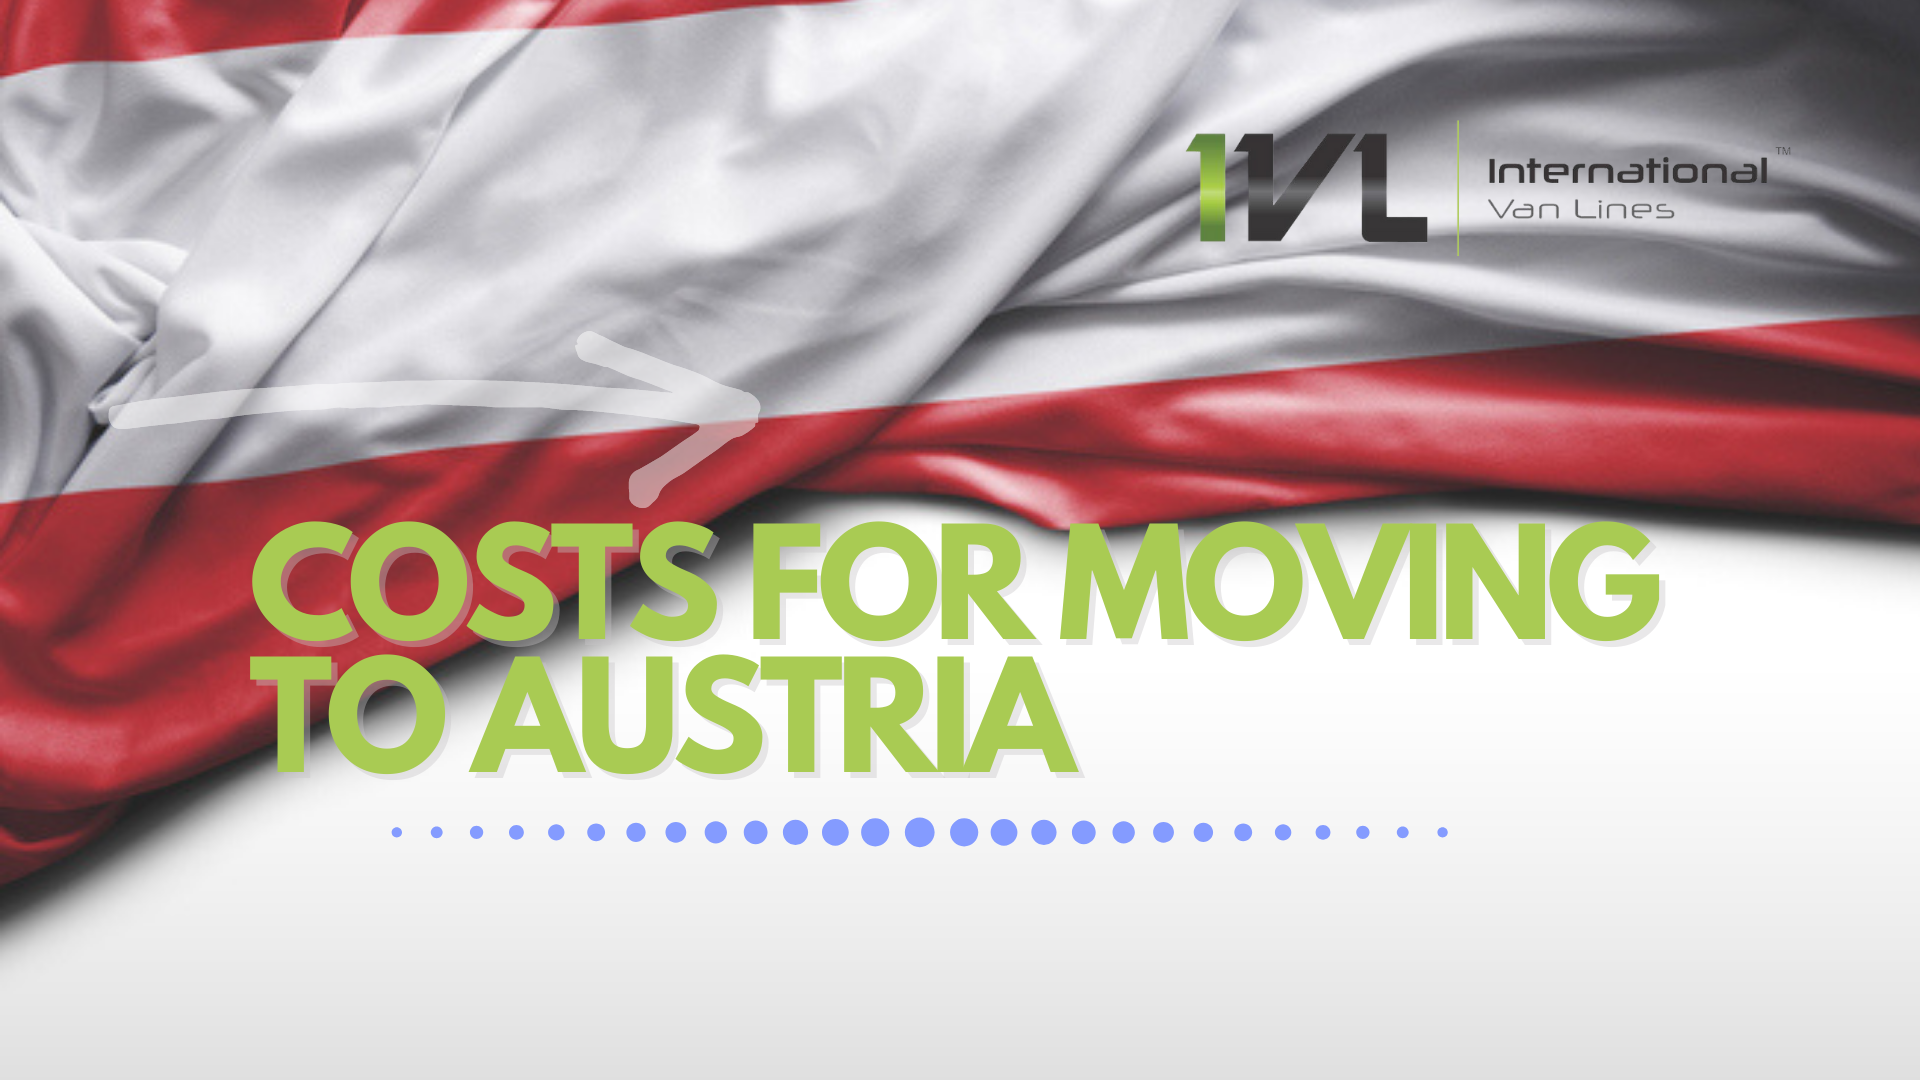 Costs for Moving to Austria